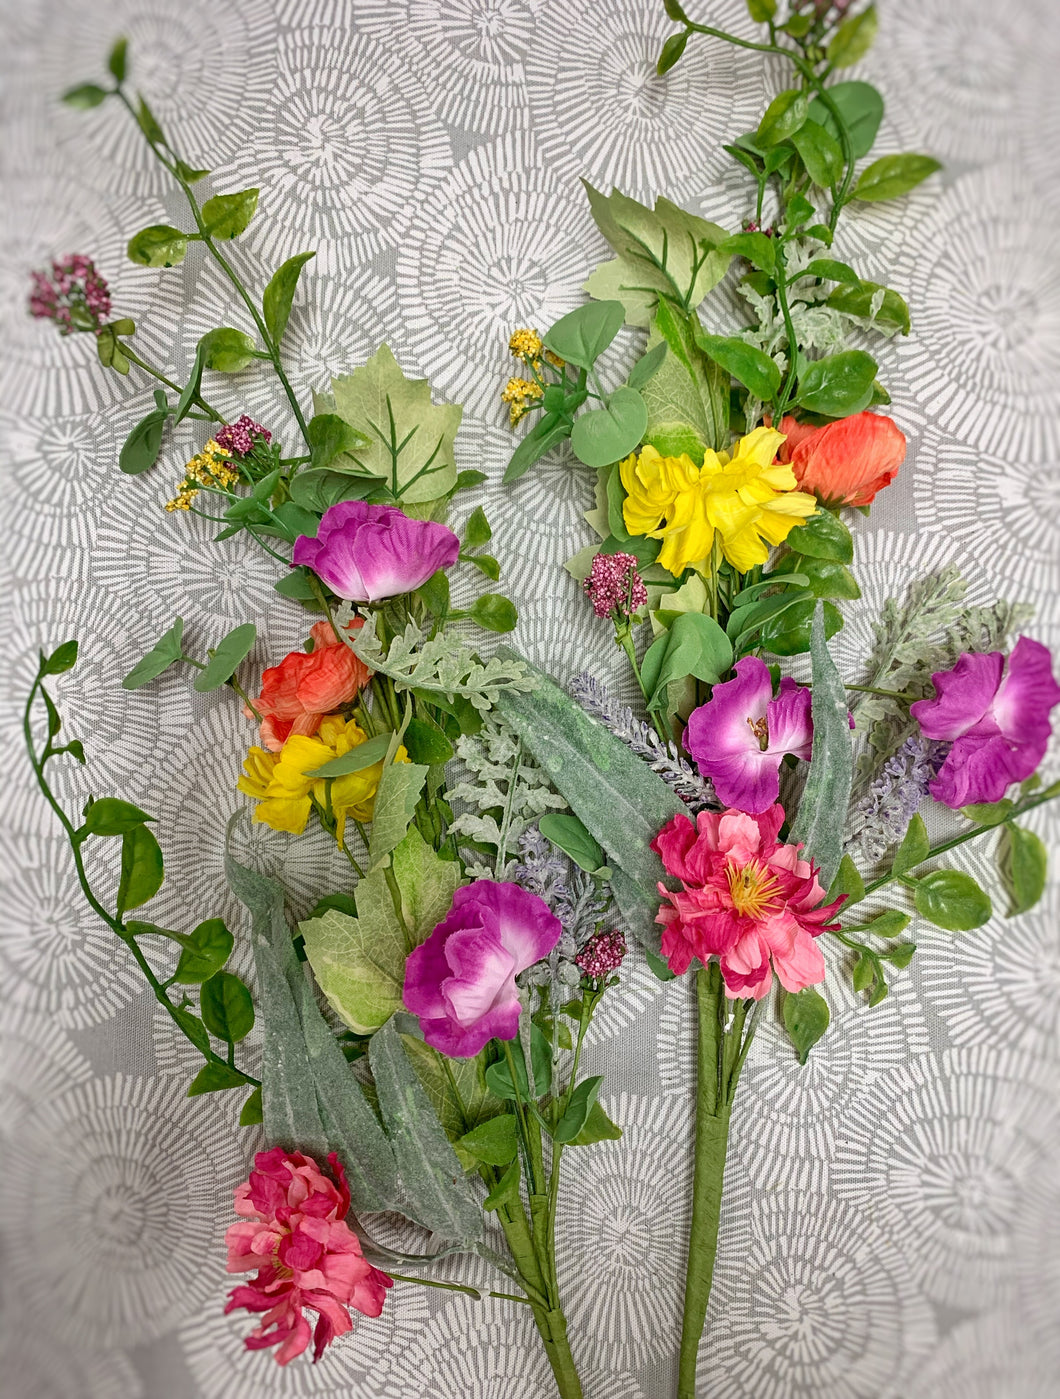 Set of 2 Mixed Wildflower Stems